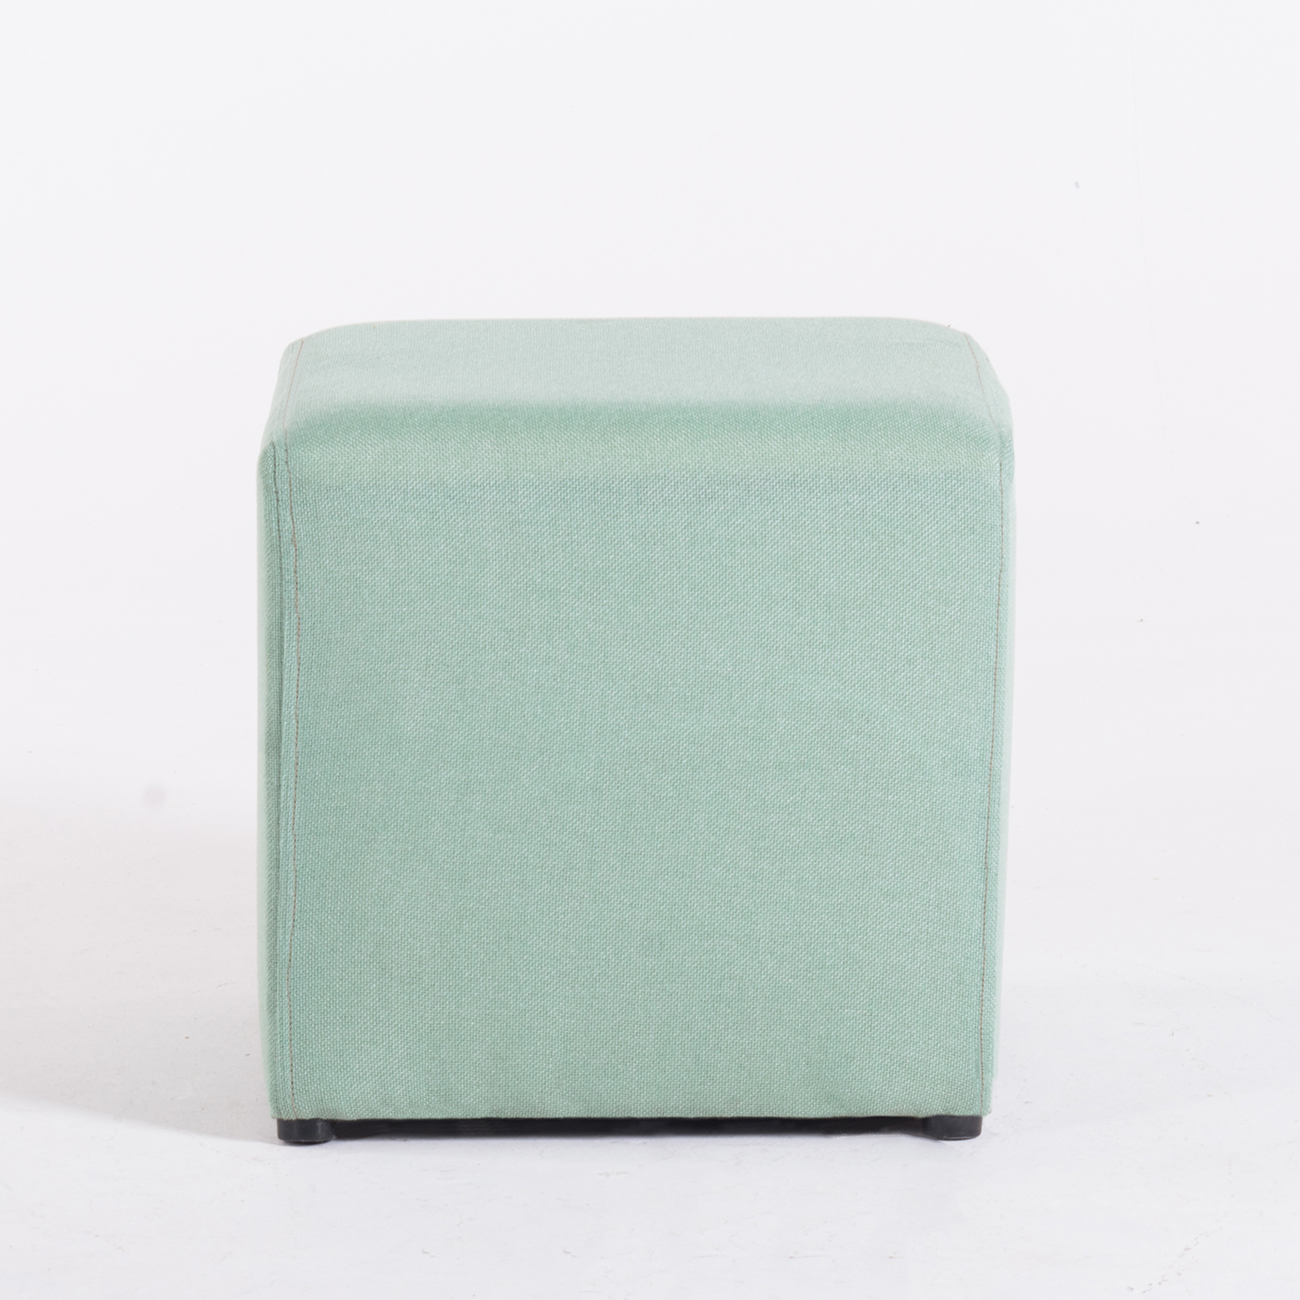 modern cube ottoman square footrest stool seating coffee fabric  - modern cube ottoman square footrest stool seating coffee fabric accentgreen